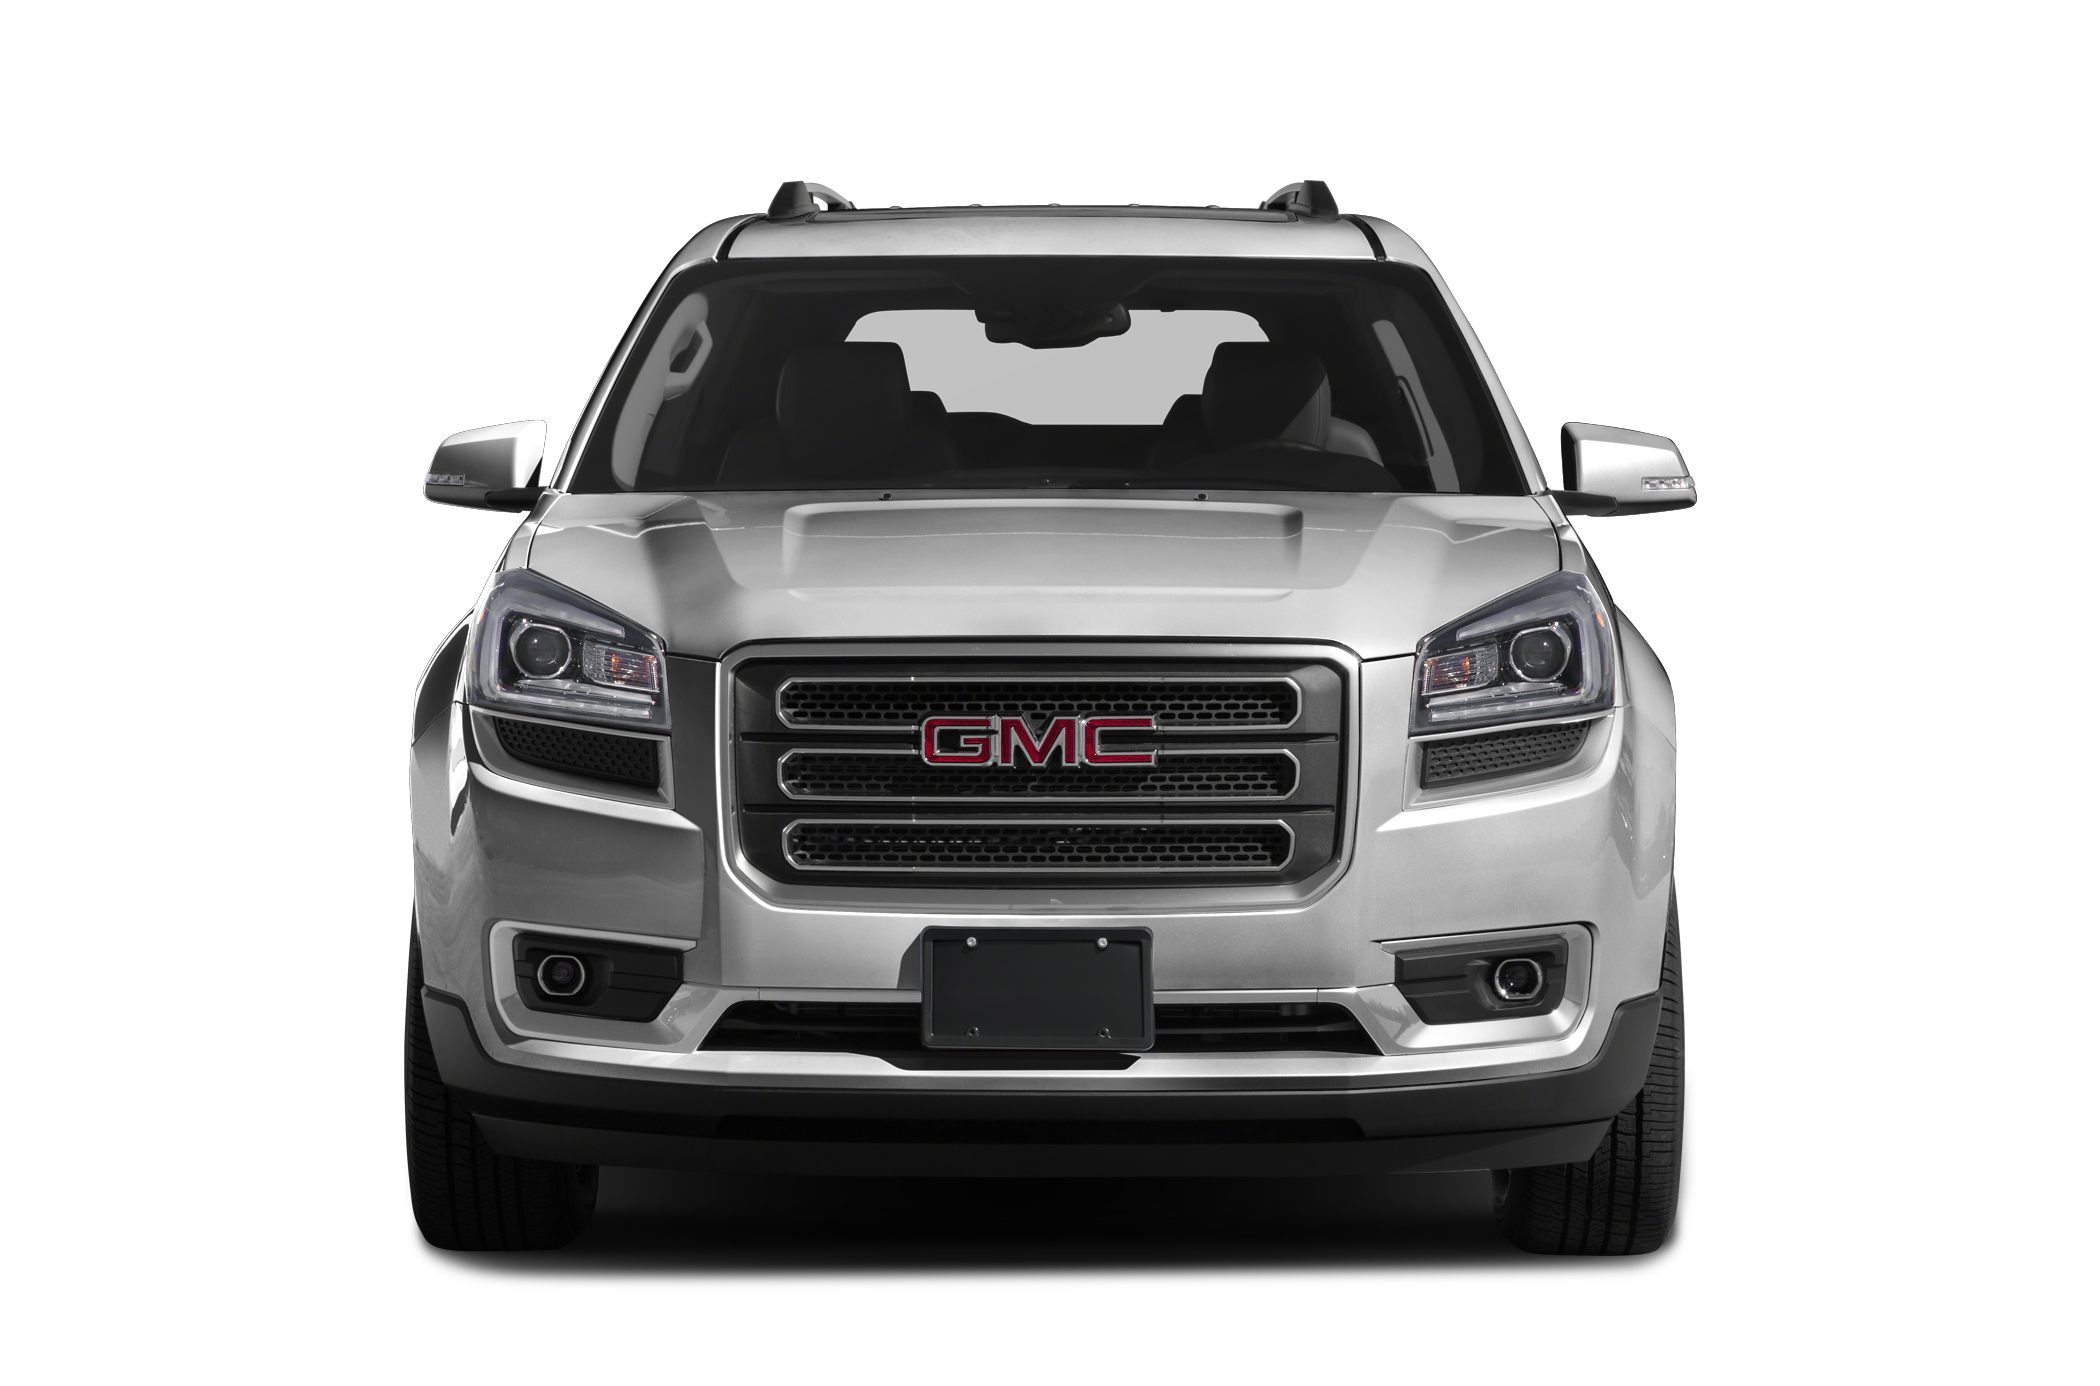 Gmc acadia for sale near me pictures drivins for Motor and vehicles near me